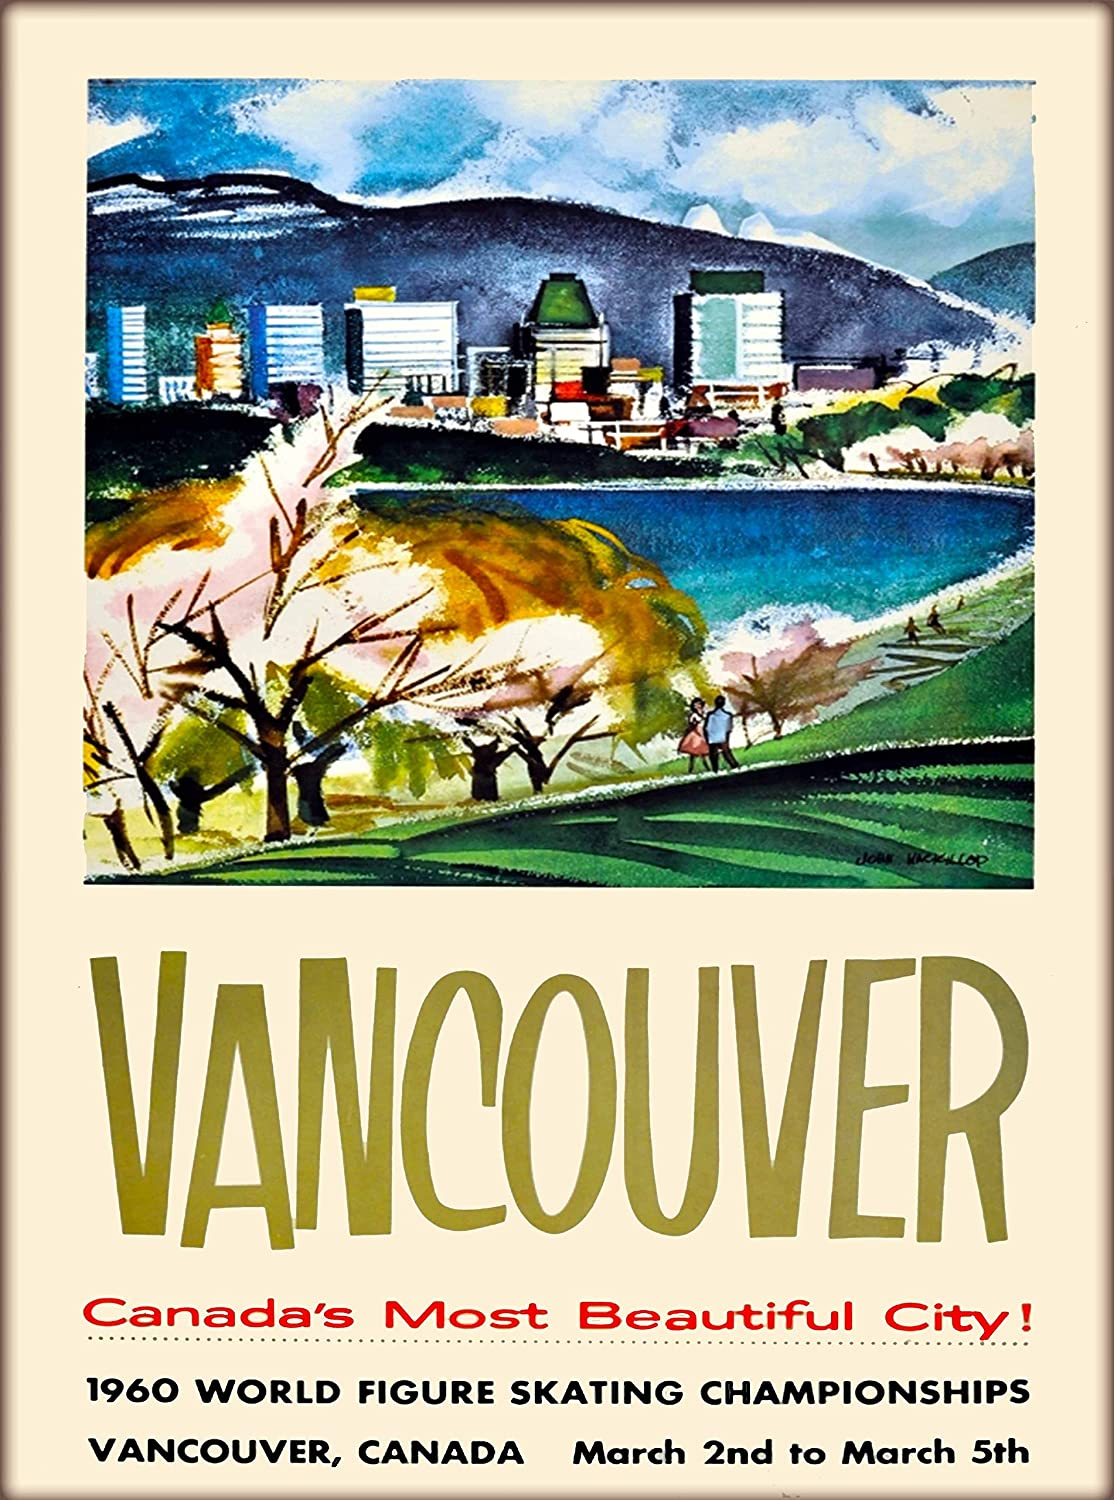 A Slice In Time Vancouver Canada S Most Beautiful City Canada Vintage Canadian Travel Advertisement Art Poster Print Measures 10 X 13 5 Inches Posters Prints